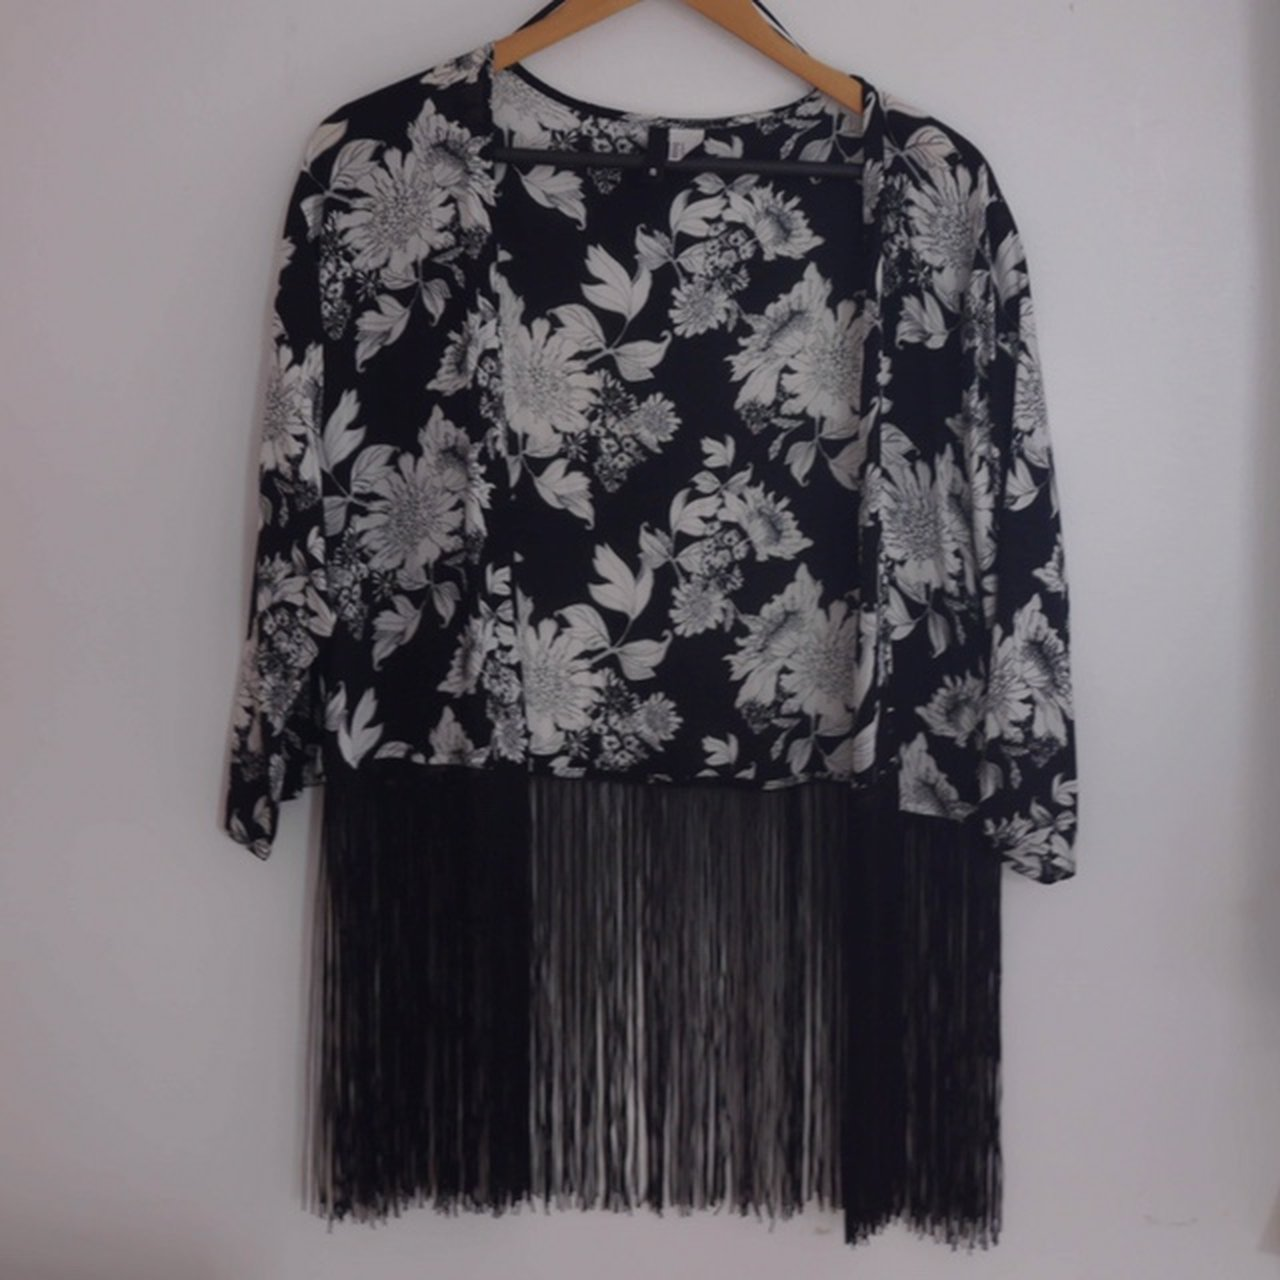 25affd71ba Pre-loved H&M black and white floral kimono with black In a - Depop